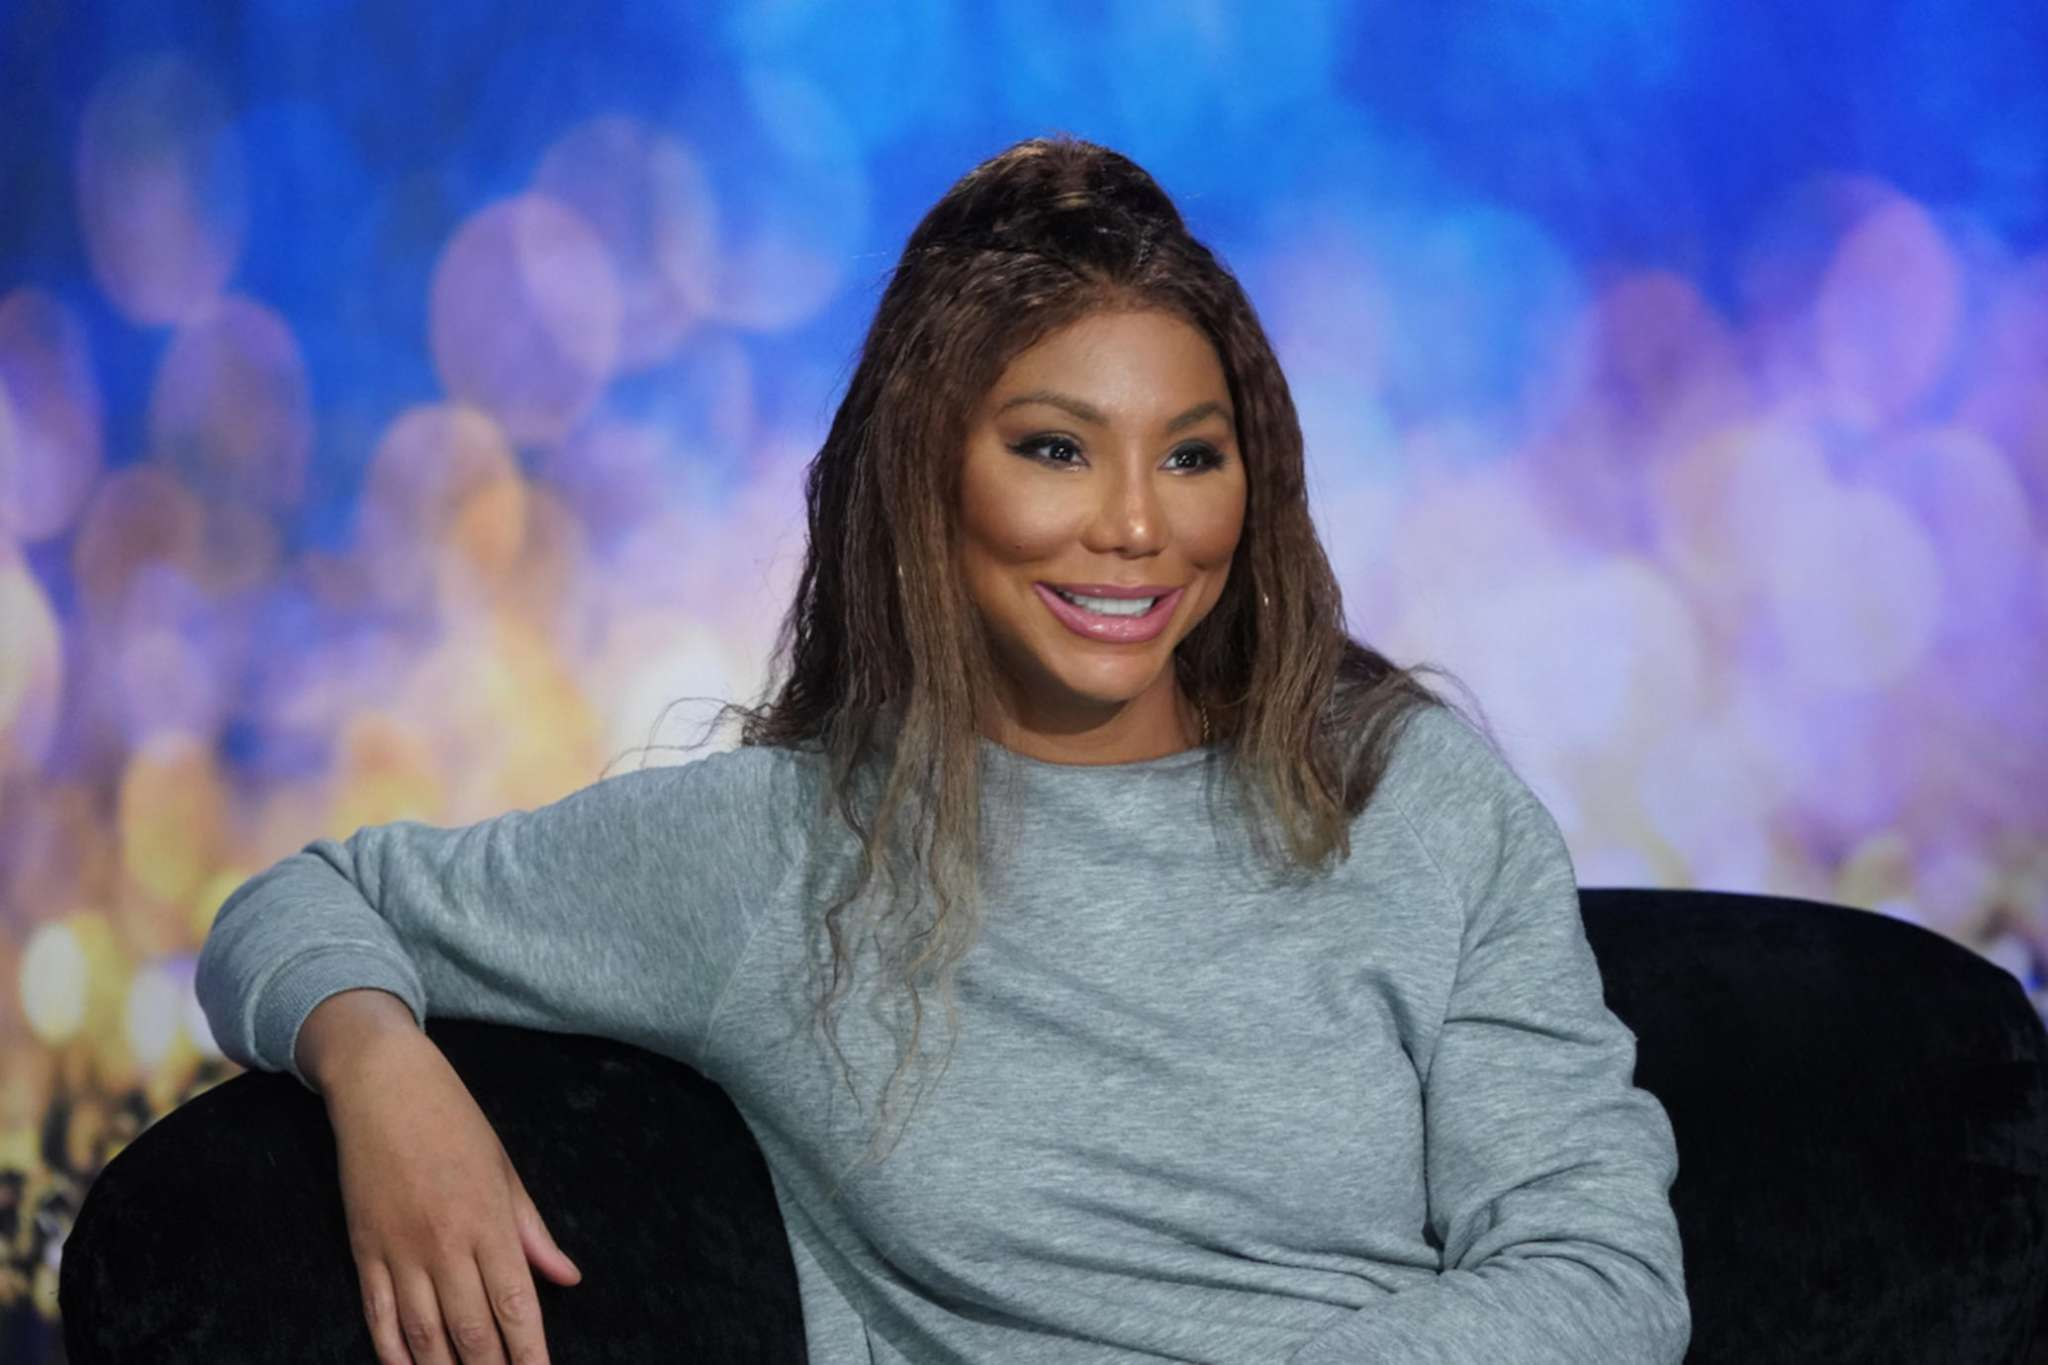 Tamar Braxton Wins Celebrity Big Brother And Takes Home $250k - Kandi Burruss Gets Emotional About Their Renewed Friendship - Watch The Vids